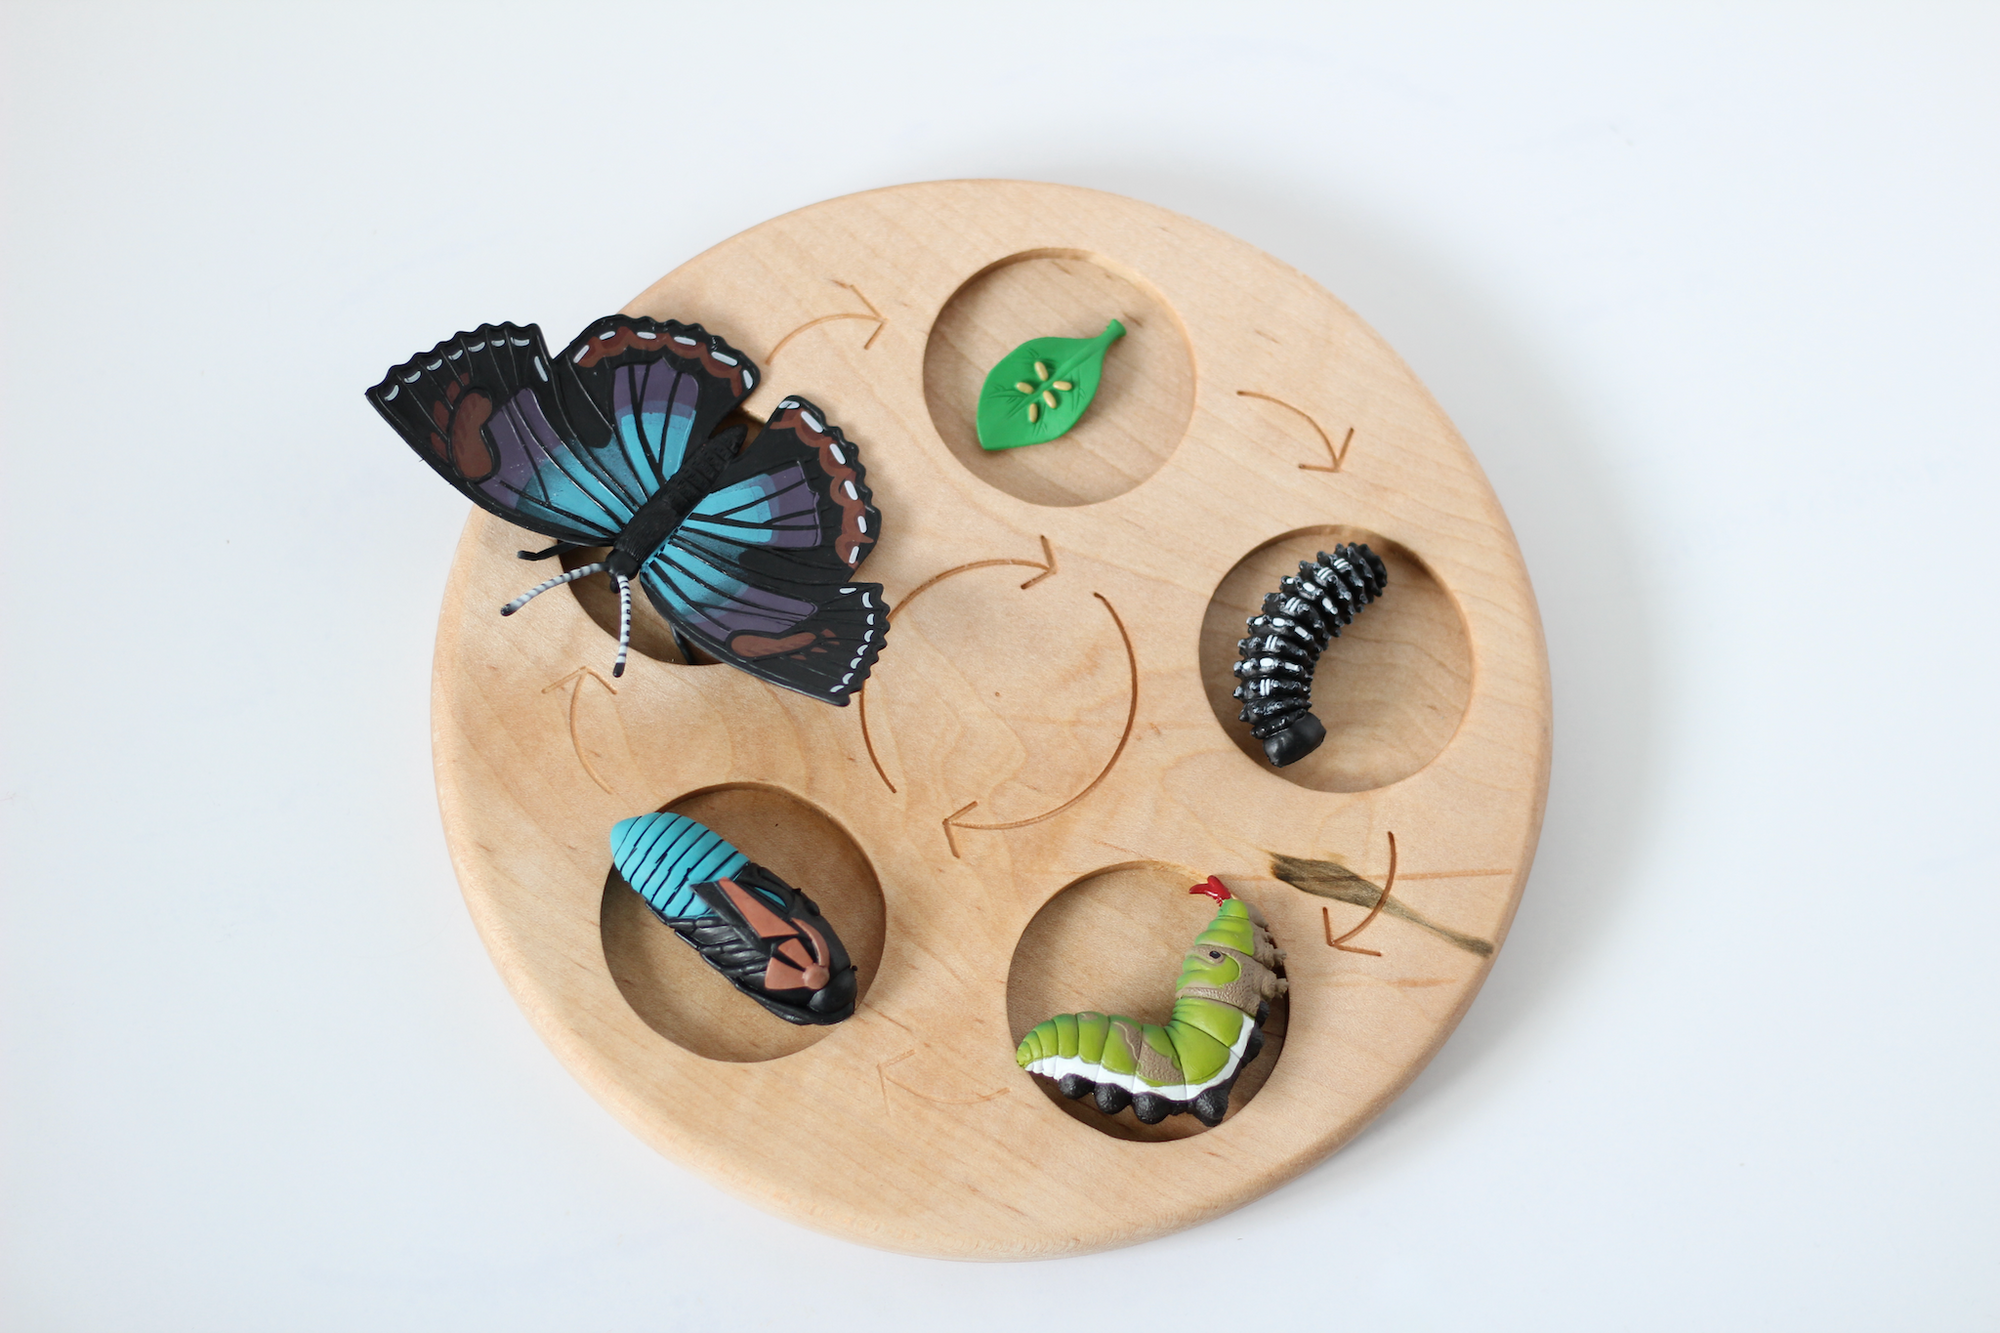 Wooden life cycle board for nature studies.